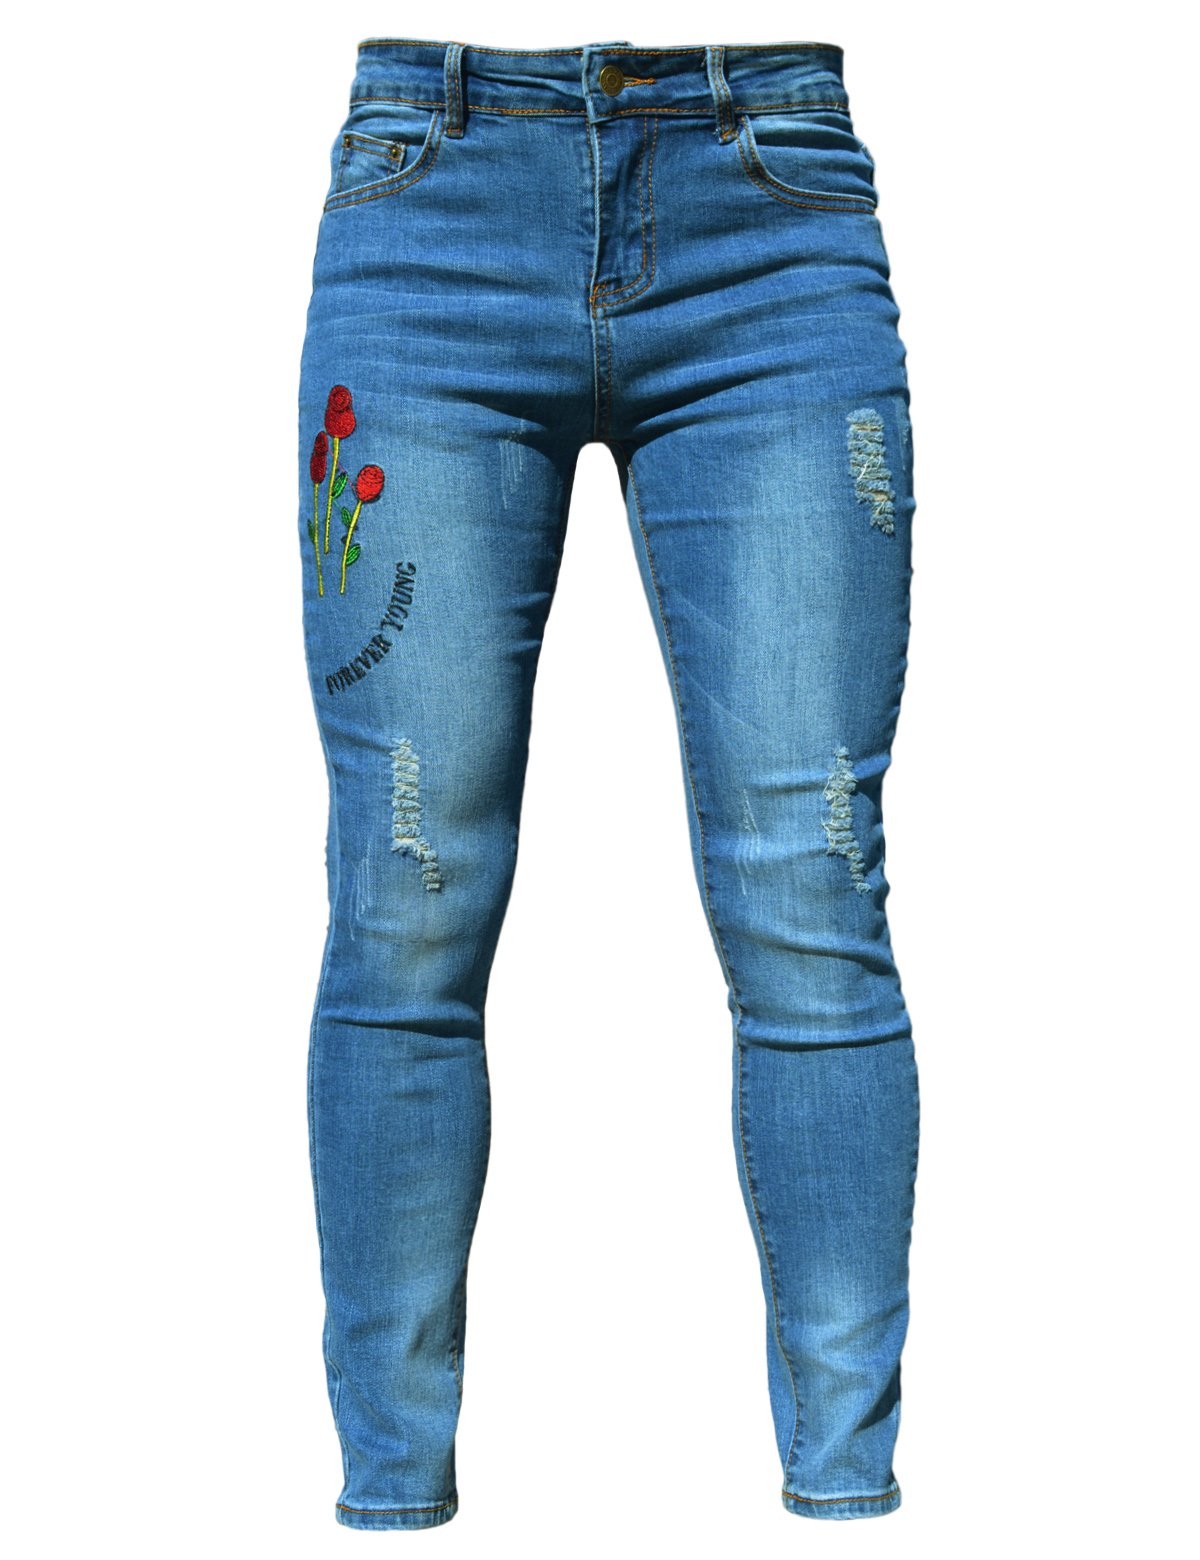 PHOENISING Women's Sexy Curvy Jeans Ripped Hole Style Skinny & Comfy Pants